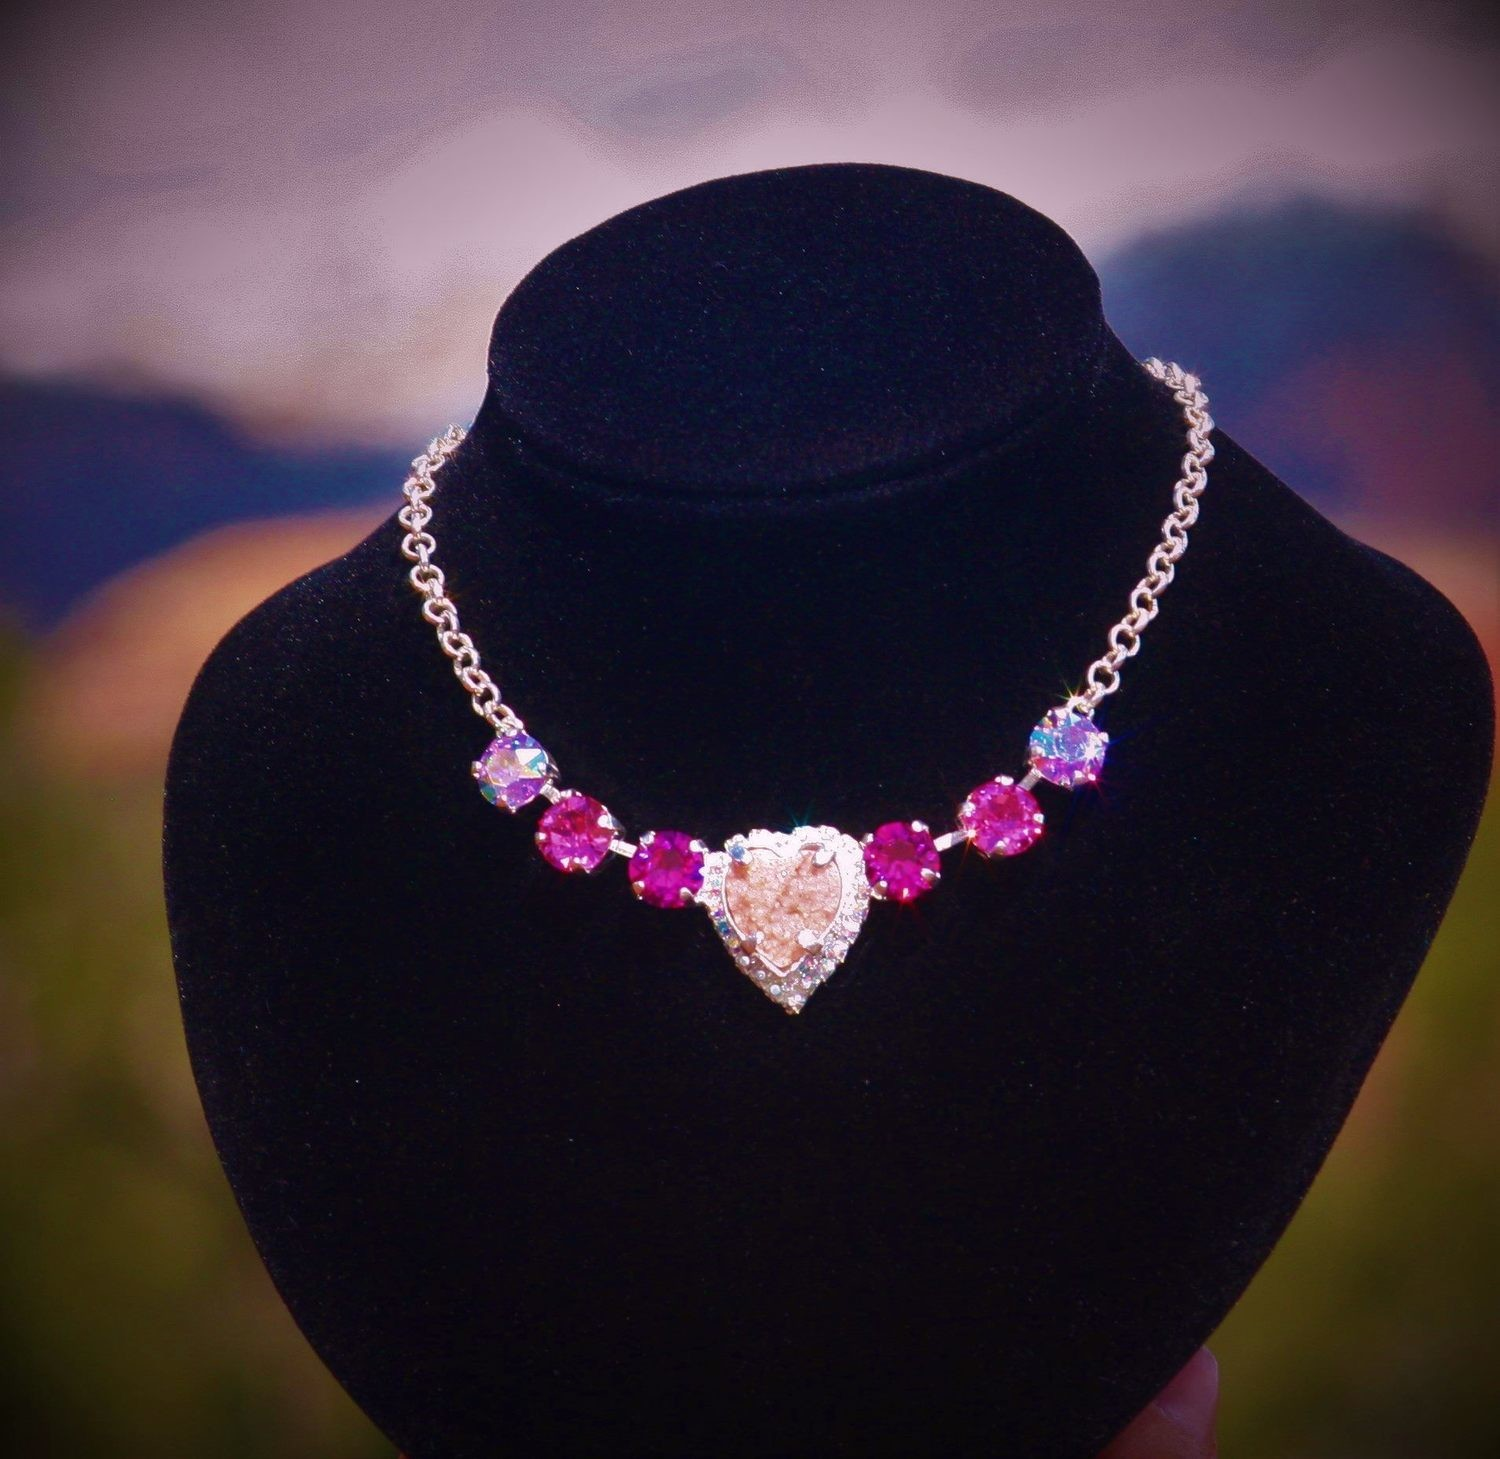 Sedona Hearts of Mother Earth Gaia/ Sophia Pink Ray Healer Priestess Divine LOVE $244.00/444.000 {Light Workers sale}